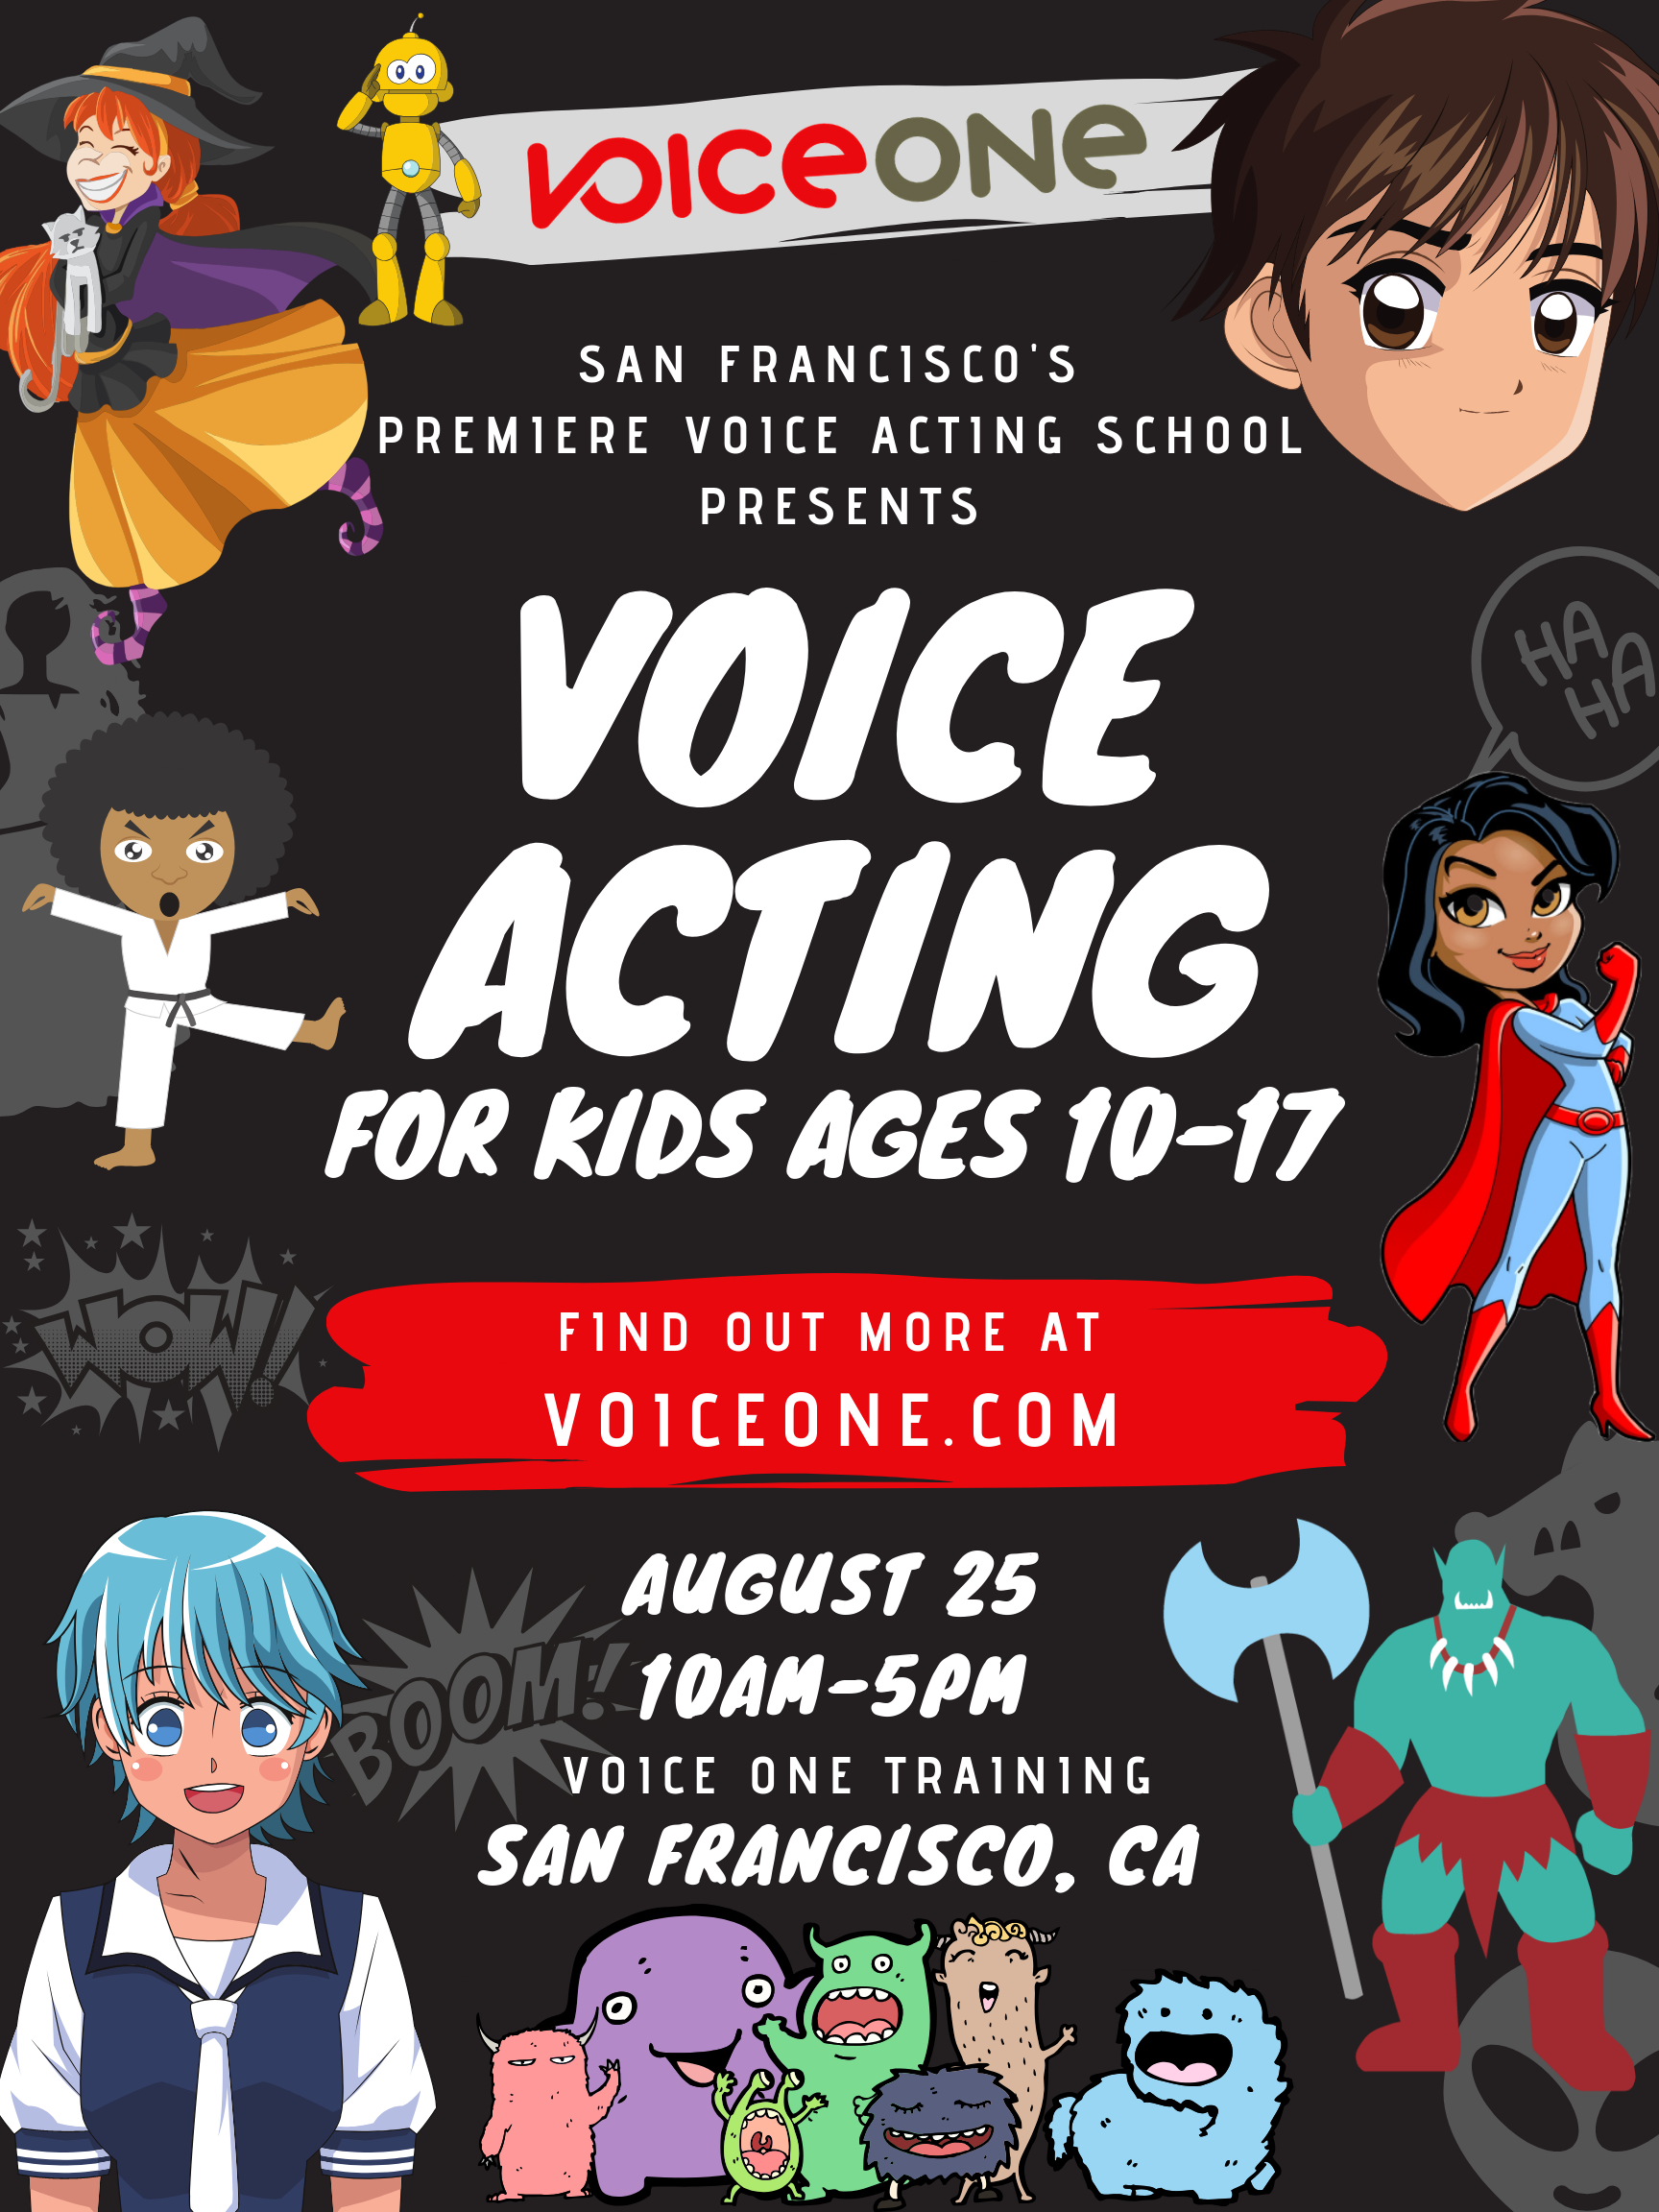 Voice Acting for Kids Ages 10-17